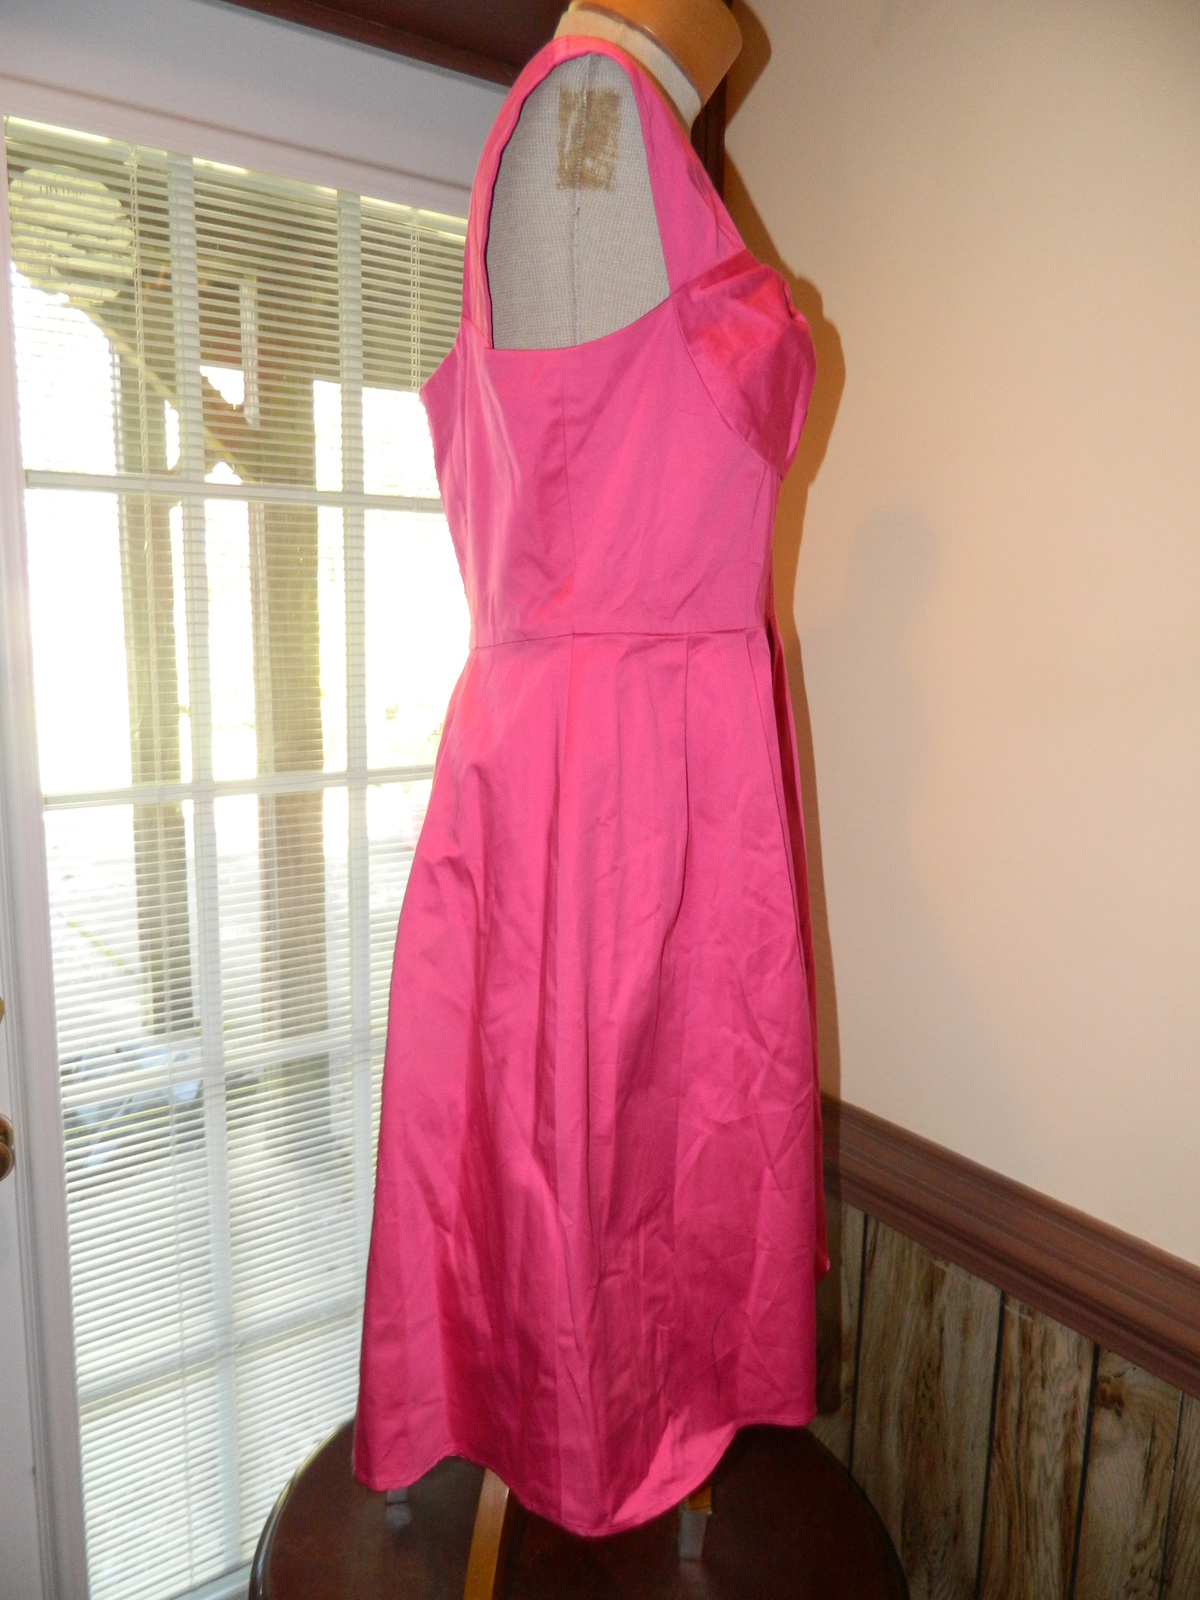 Calvin Klein size 12 Pink Sleeveless Dress Polyester / Spandex New without tags